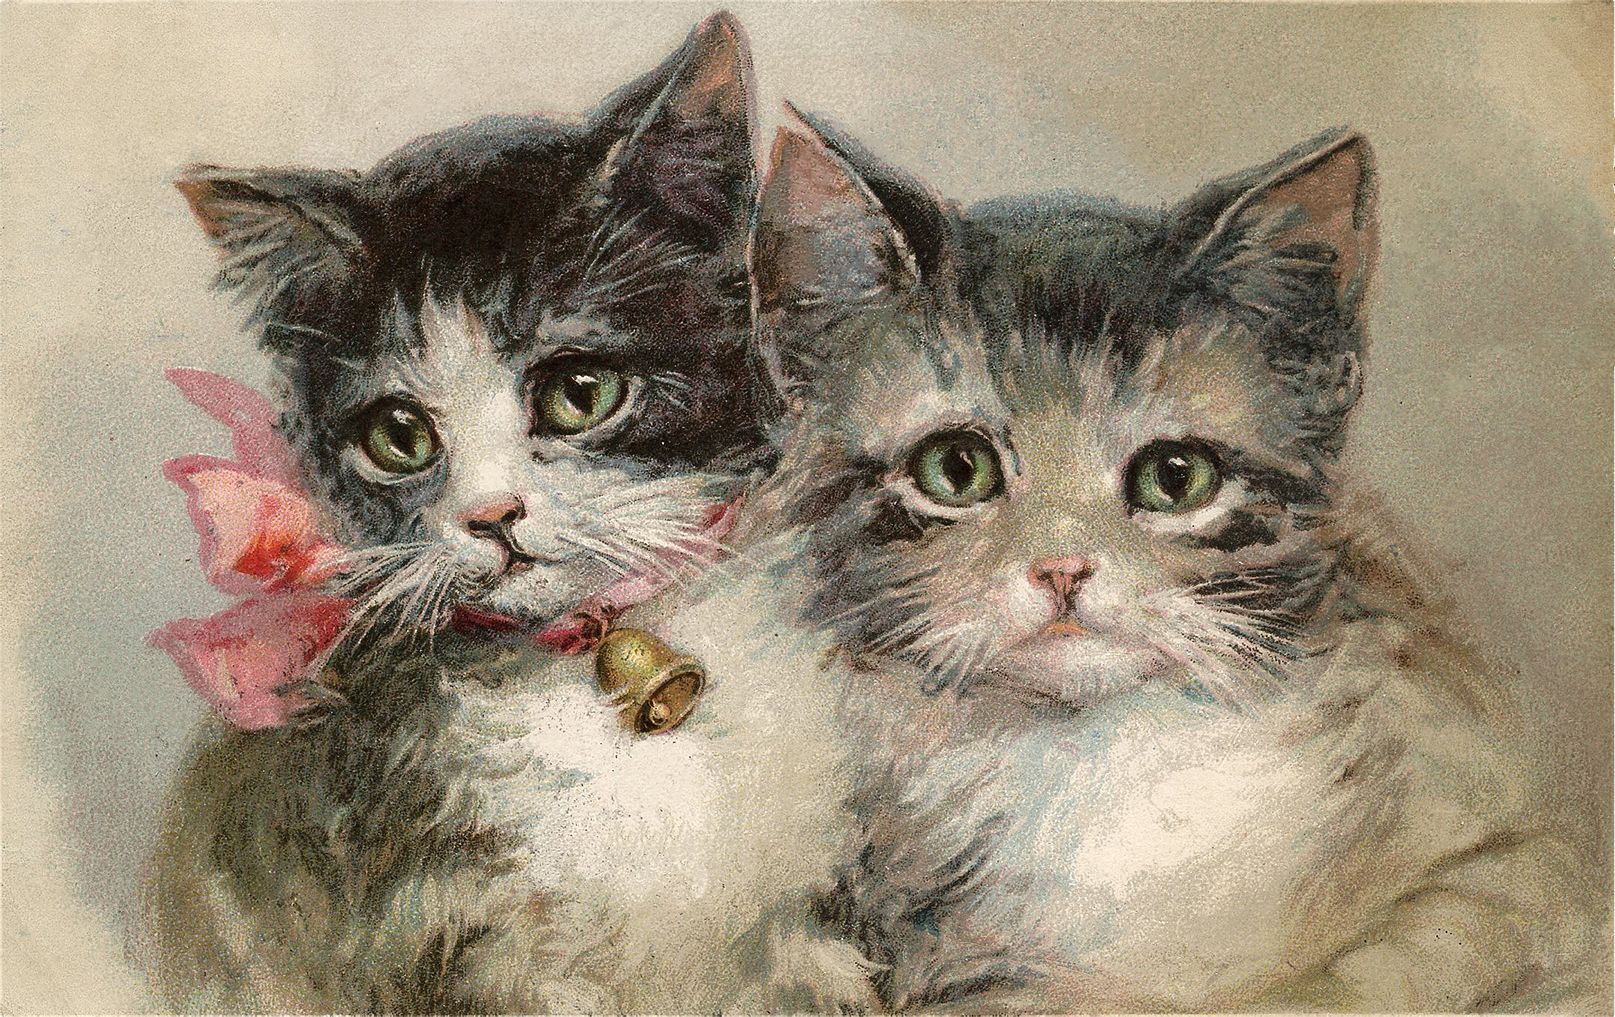 15 Beautiful Vintage Kitten And Cat Pictures Kitten Images Grey And White Kitten Vintage Cat